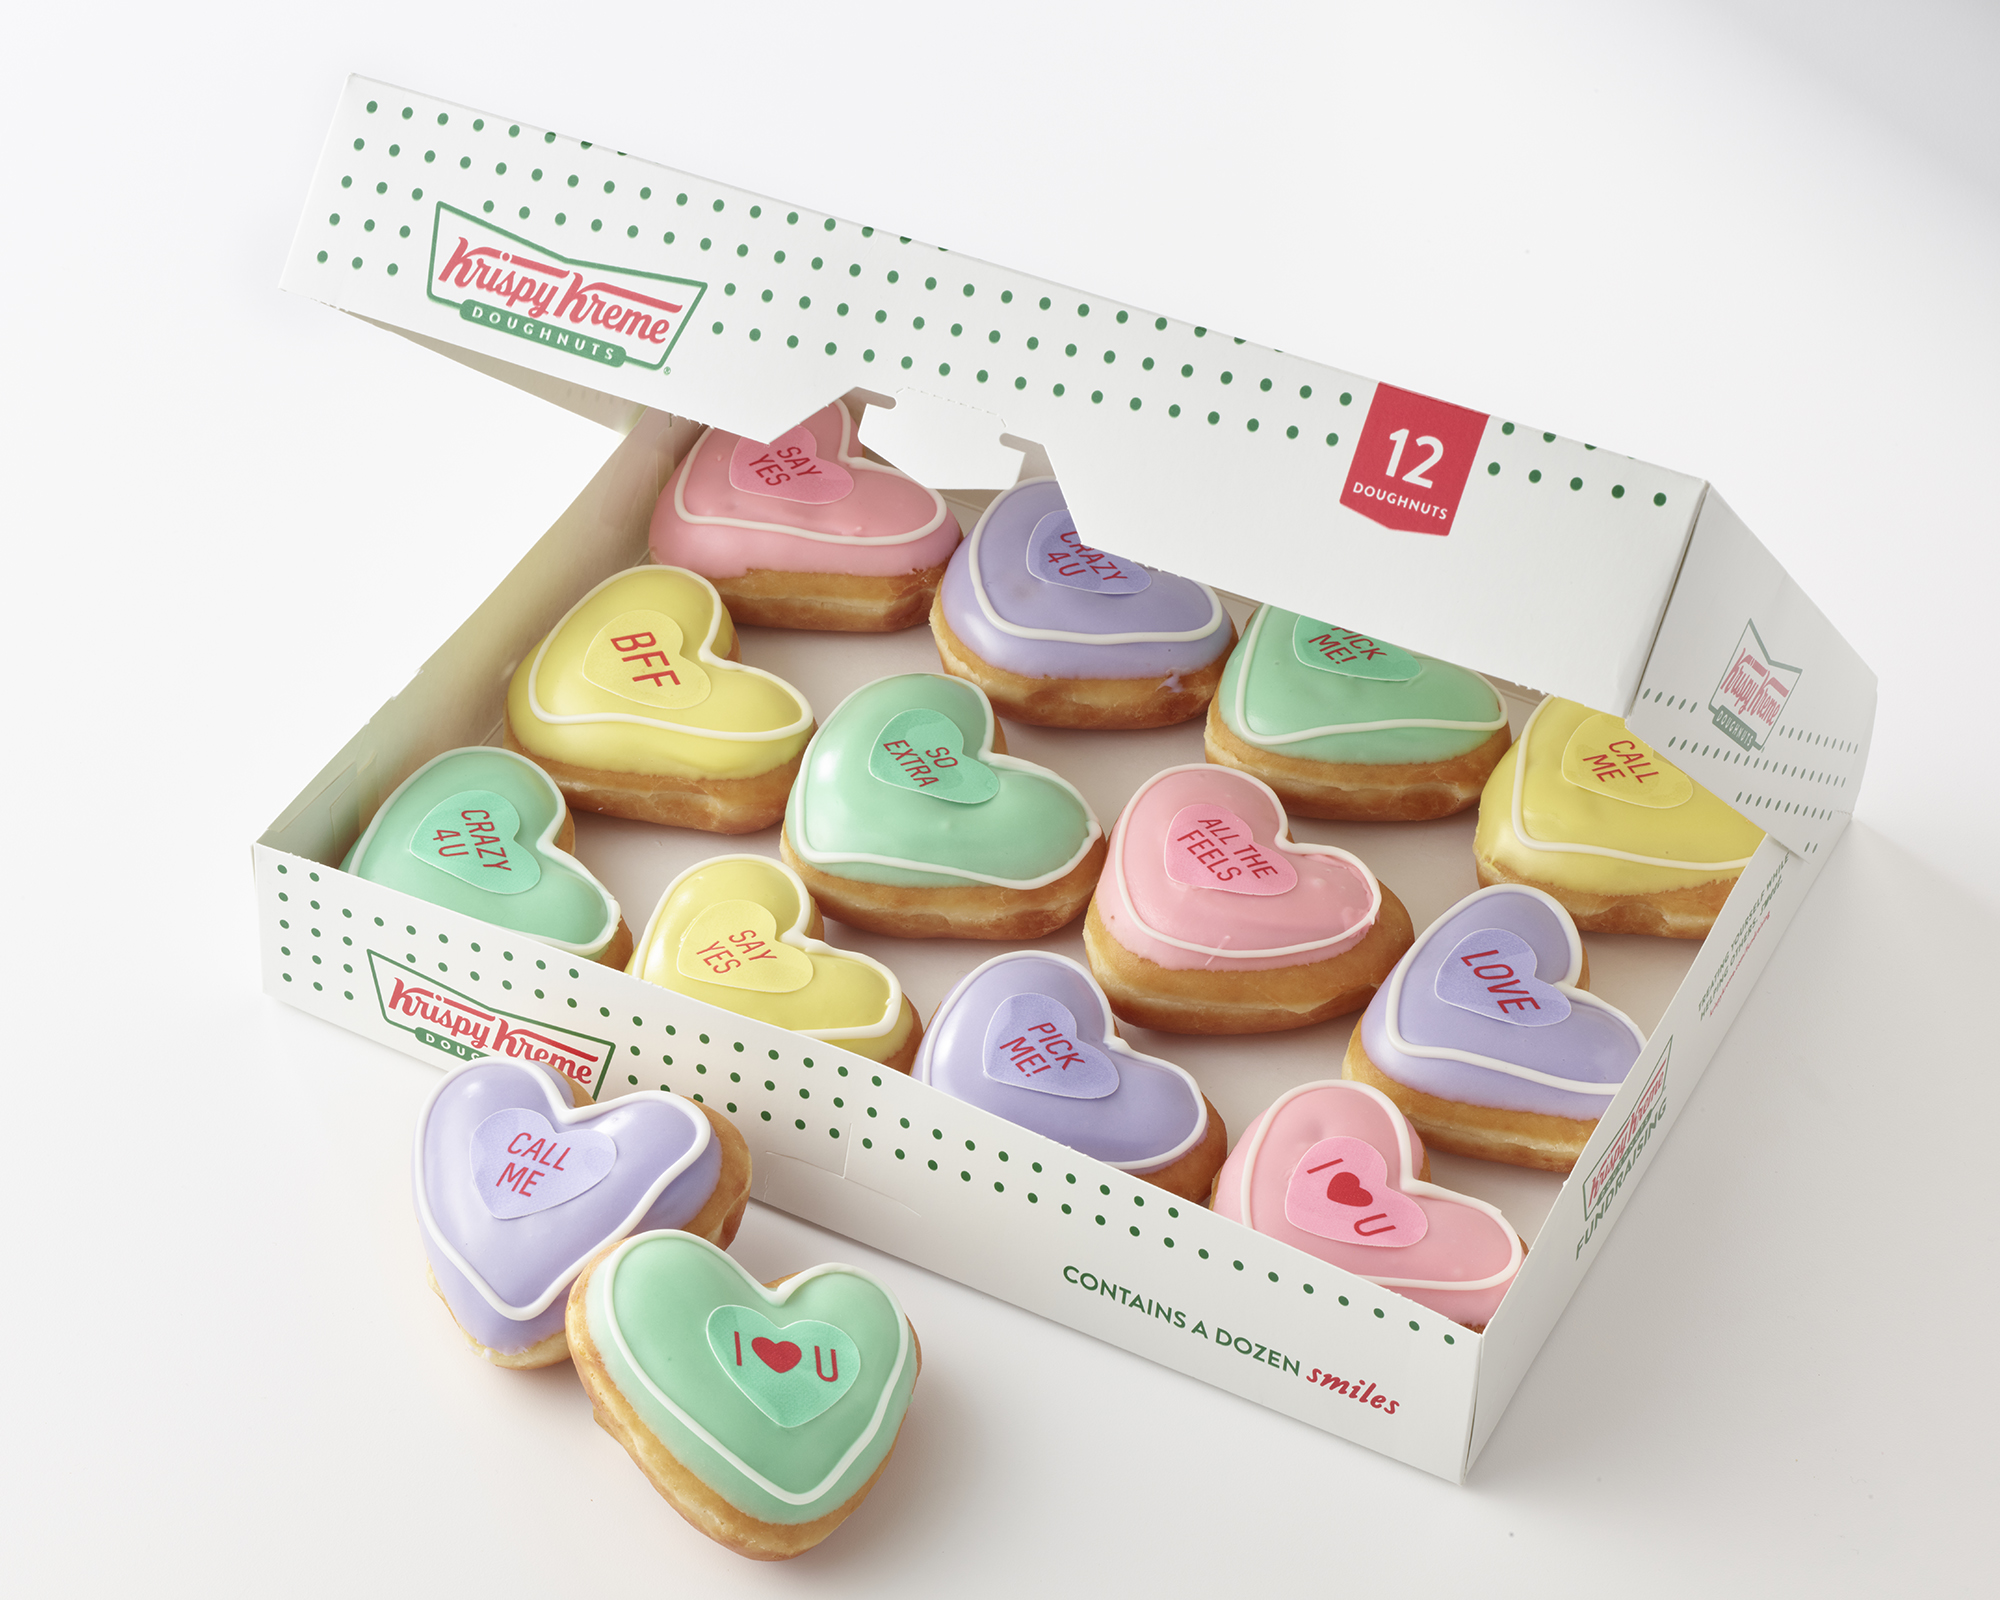 Krispy Kreme to sell 'conversation heart' doughnuts for Valentine's Day